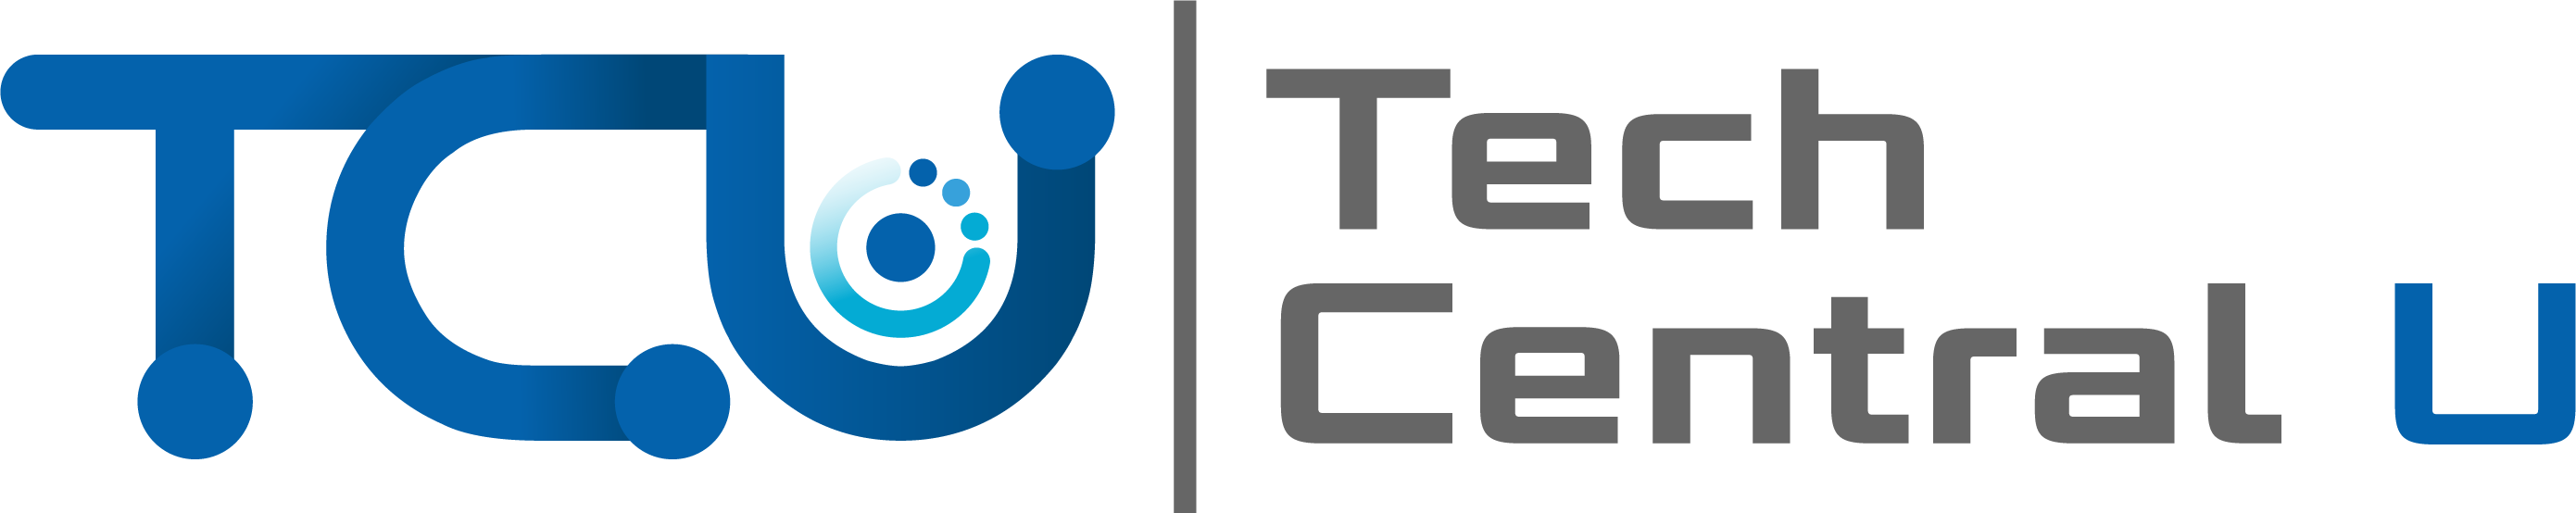 Tech Central U logo design